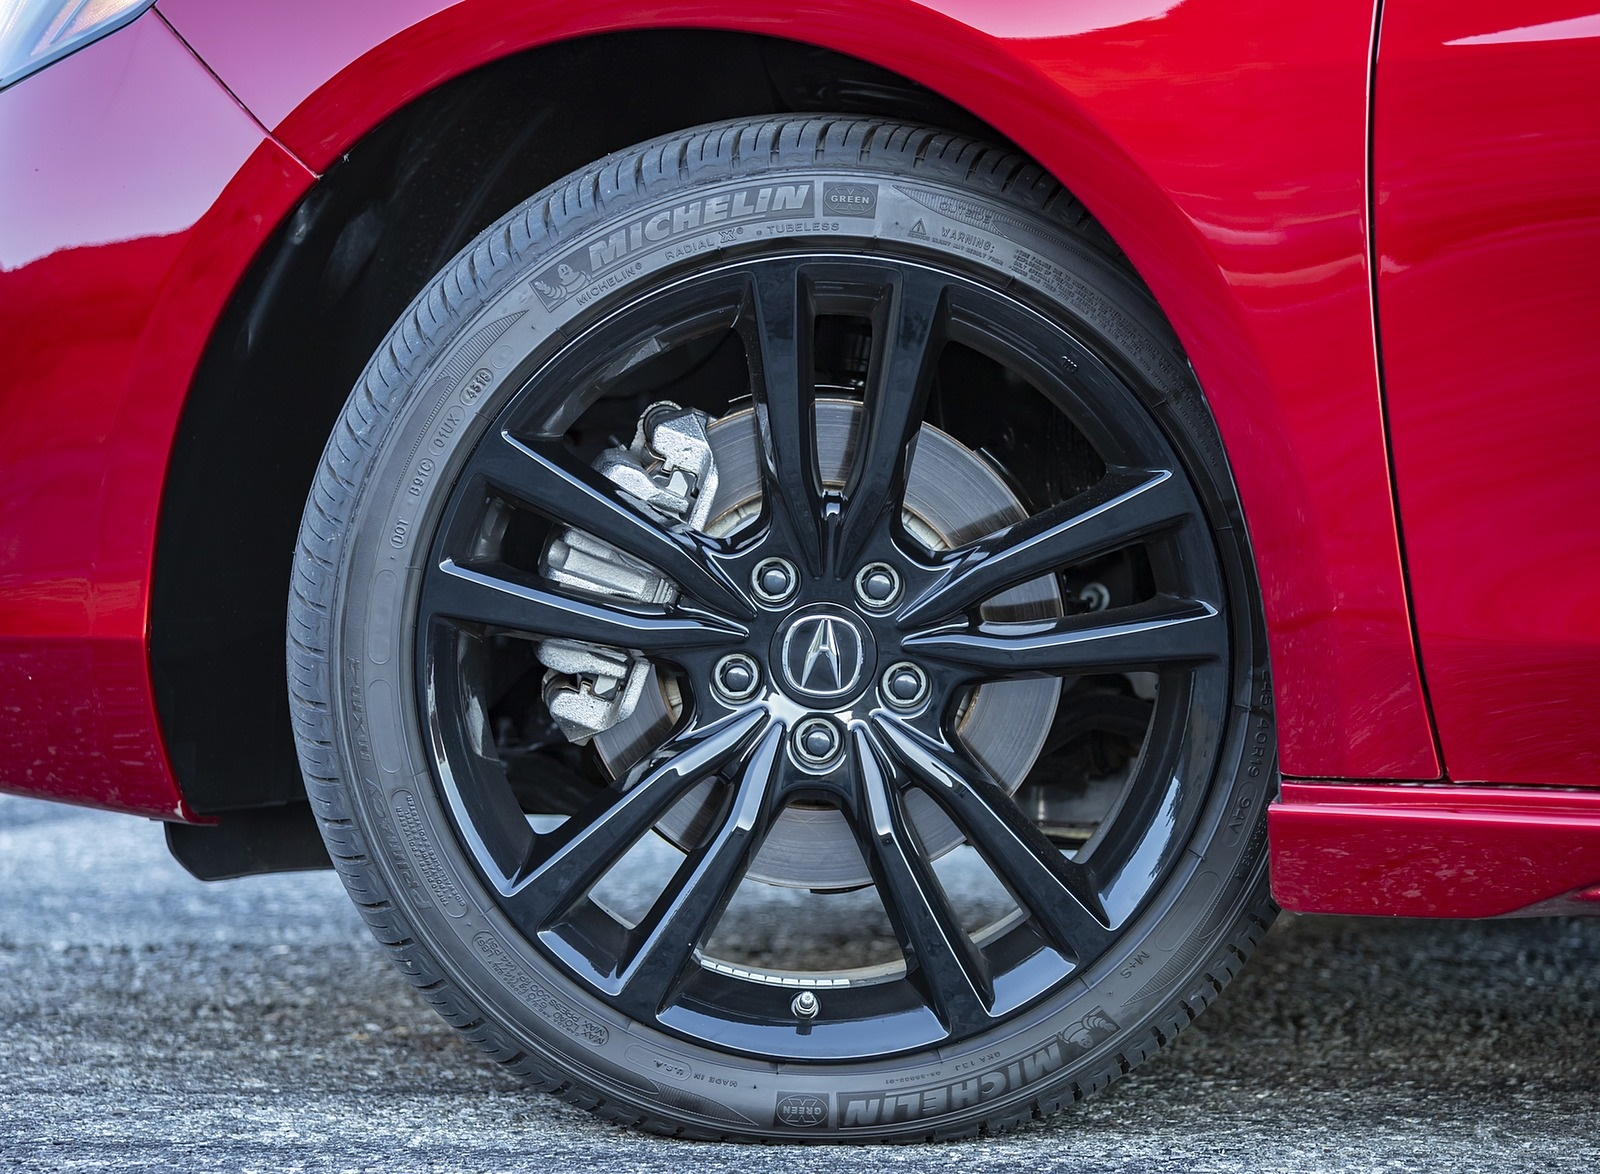 2020 Acura TLX PMC Edition Wheel Wallpapers (10)